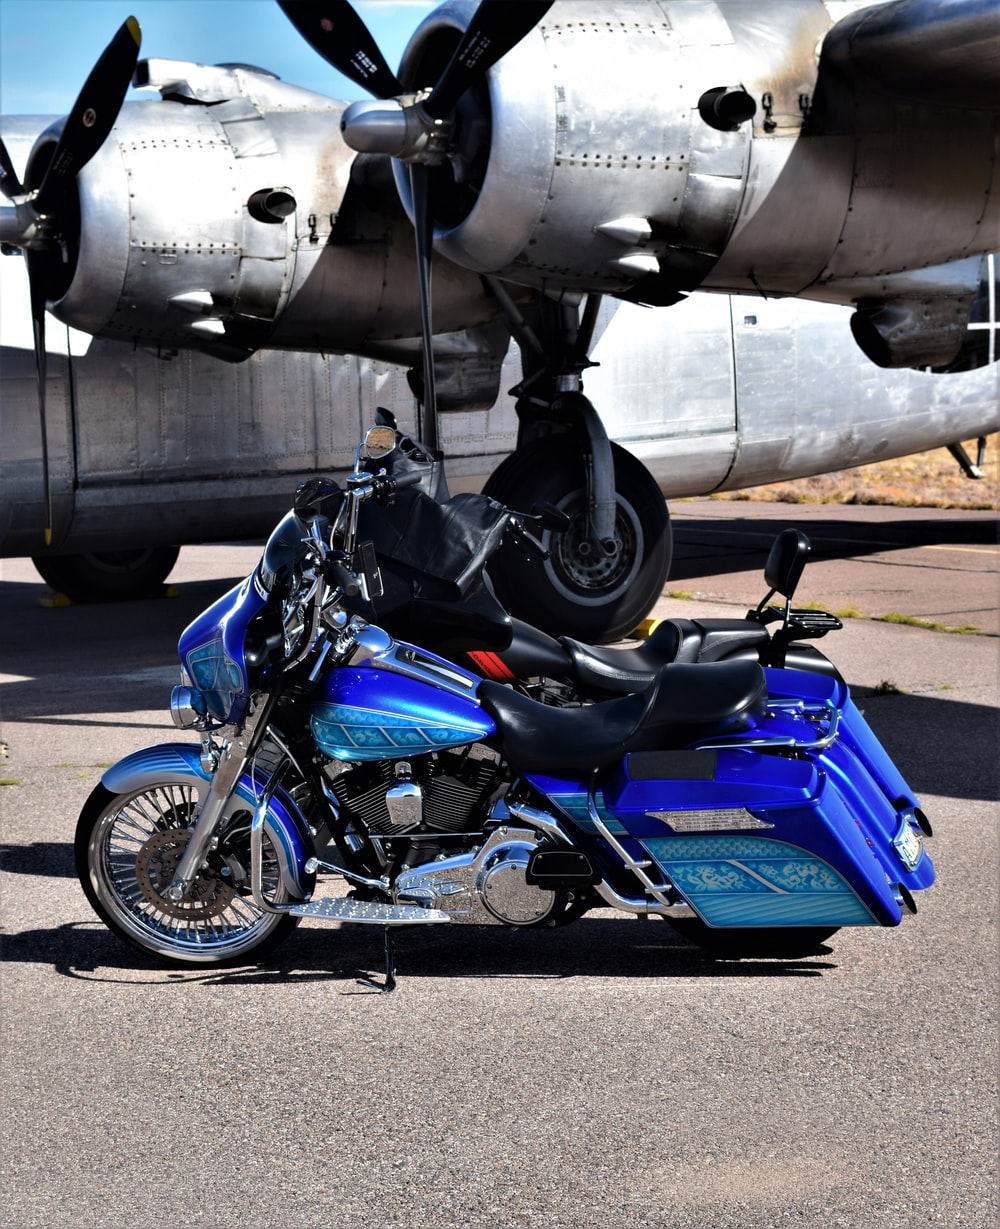 gray and black plane and blue touring motorcycle